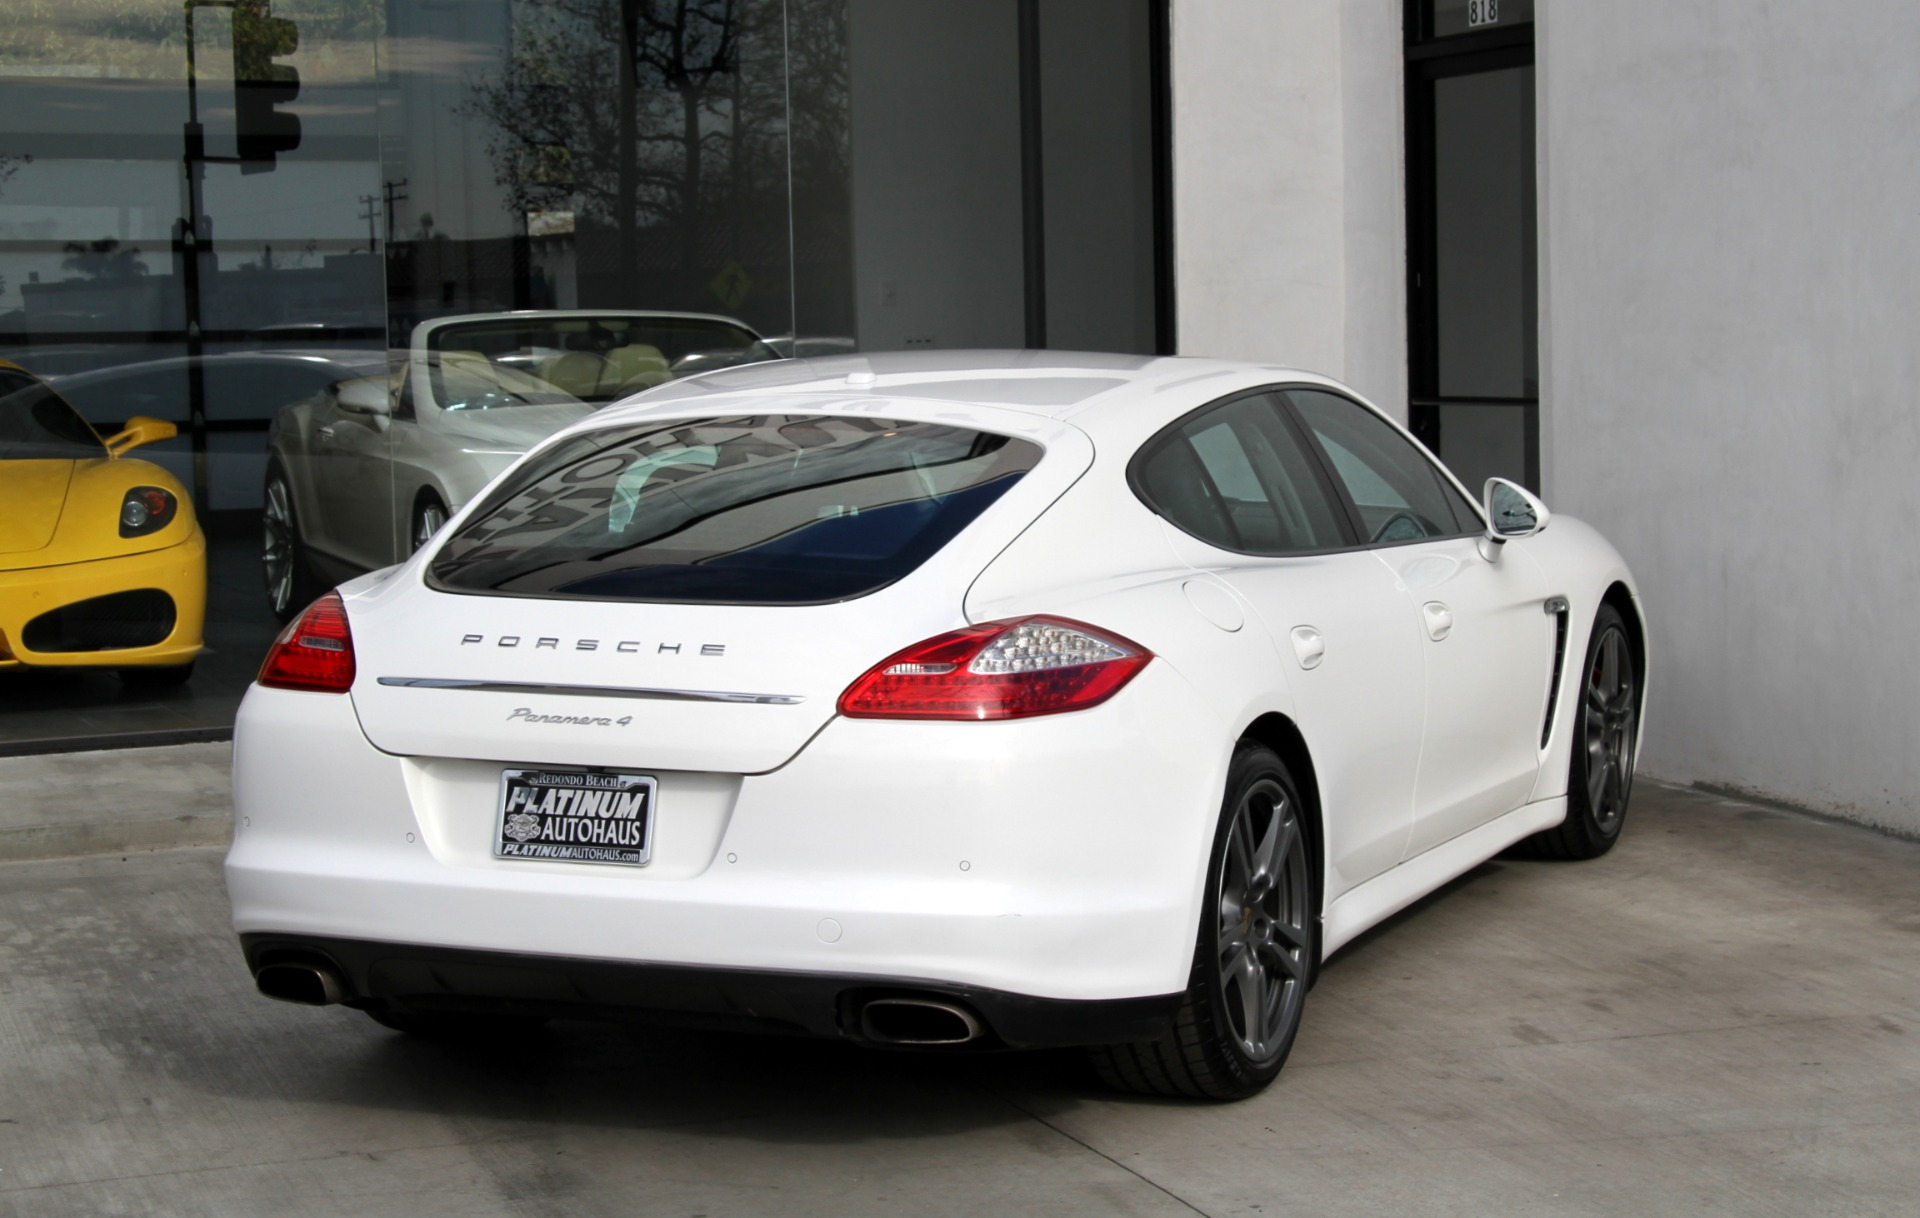 2012 Porsche Panamera 4 1 Owner Stock 6034 For